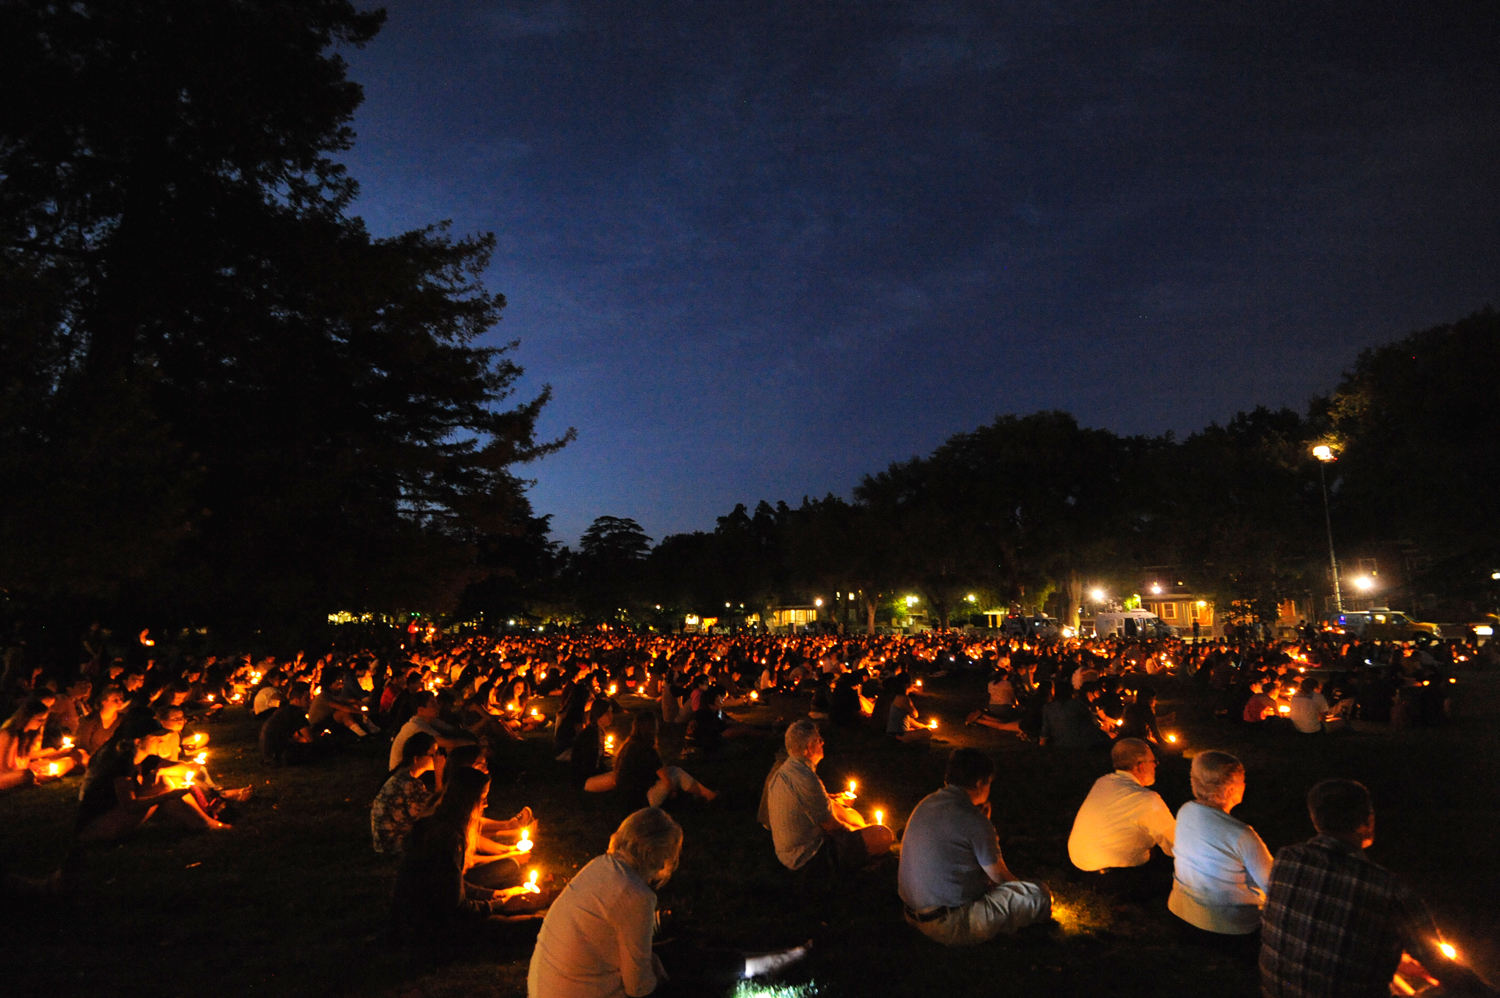 Students, faculty, and members of the public fill the East Quad at UC Davis during a candlelit vigil for the victims of UC Santa Barbara shooting on Friday, May 30, 2014. | Rosa Furneaux/The California Aggie